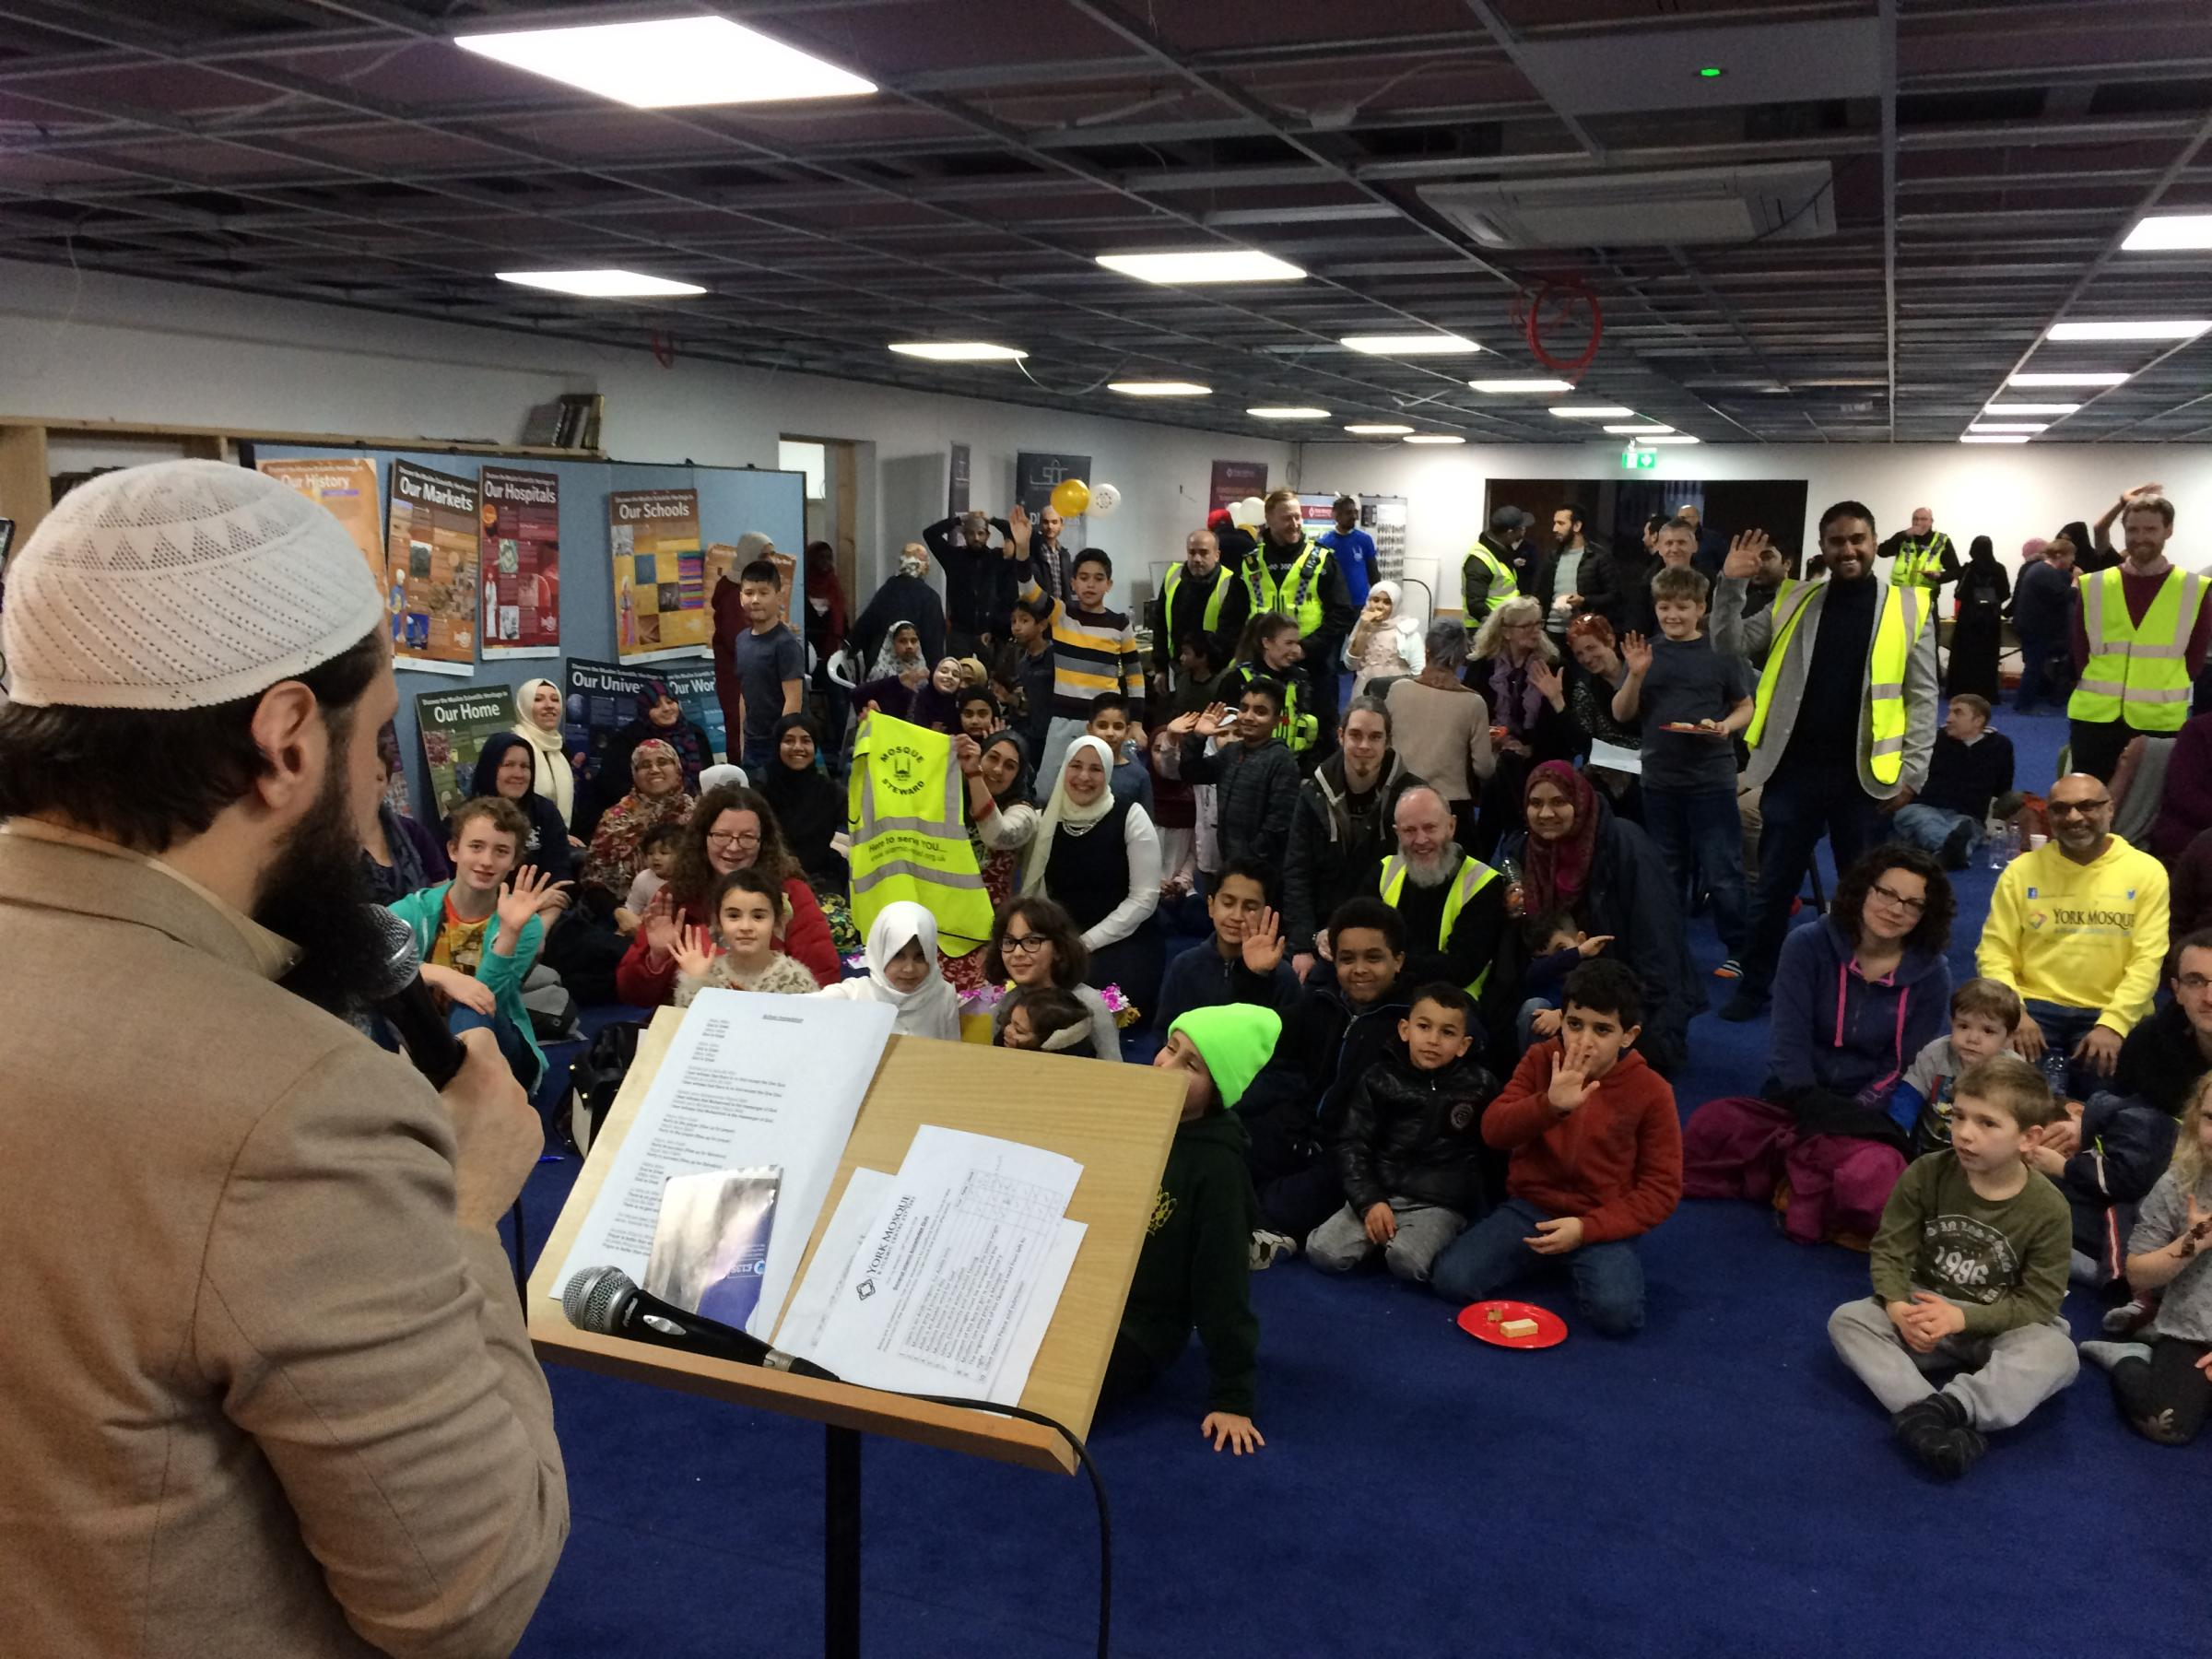 Hundreds visit mosque's open day